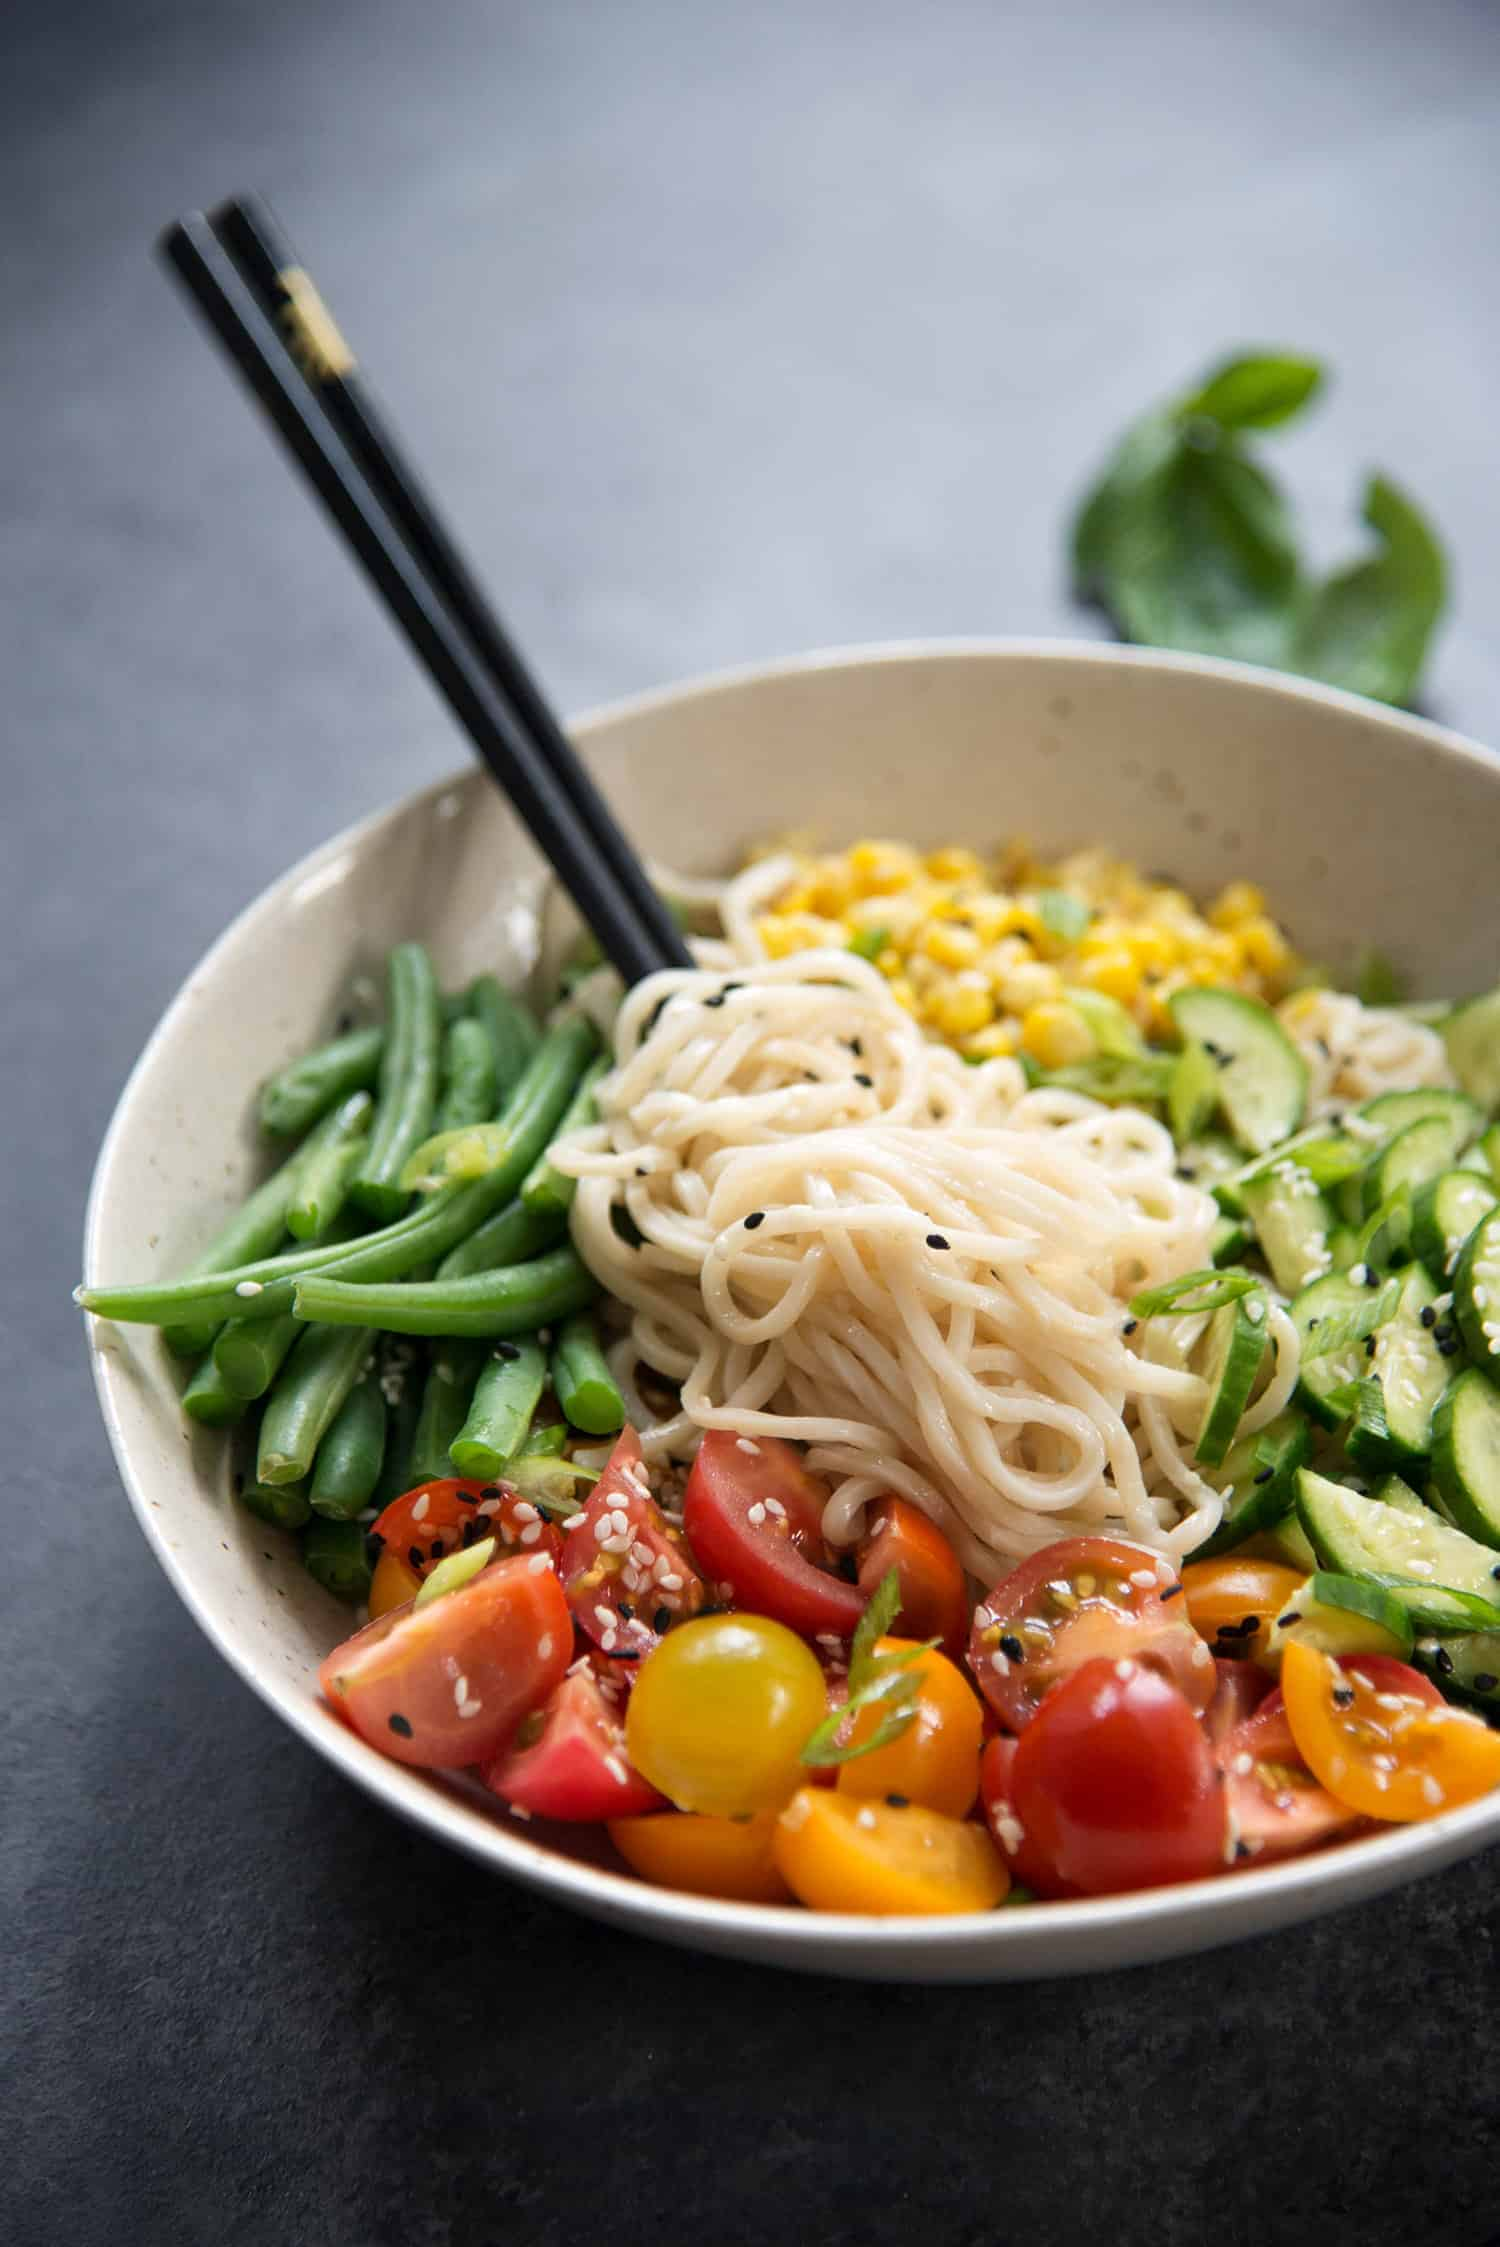 White bowl full of ramen noodles, fresh green beans, sliced tomatoes and other delicious fresh vegetables